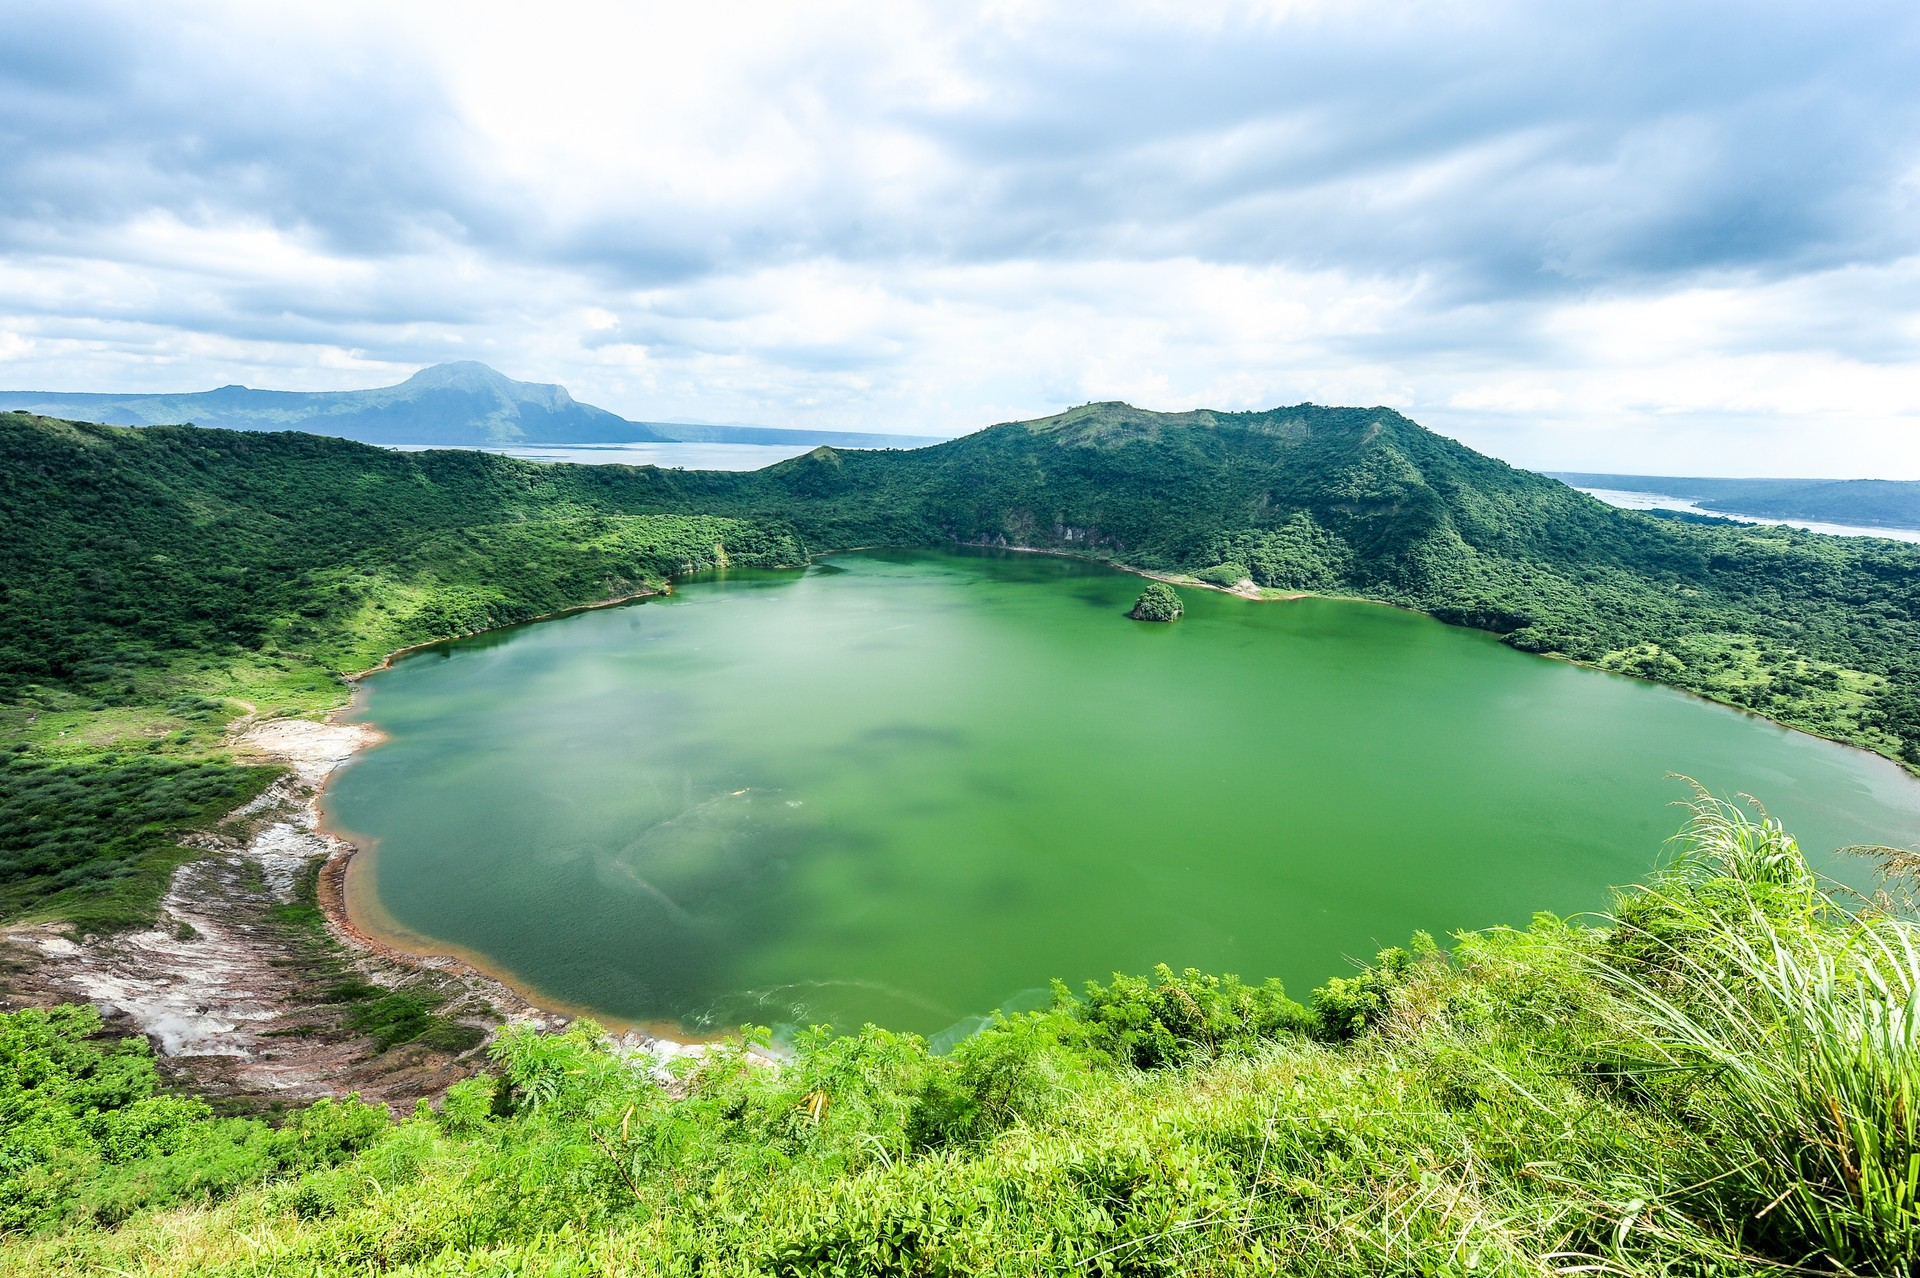 Family Phillippines: Taal Volcano Crater Lake